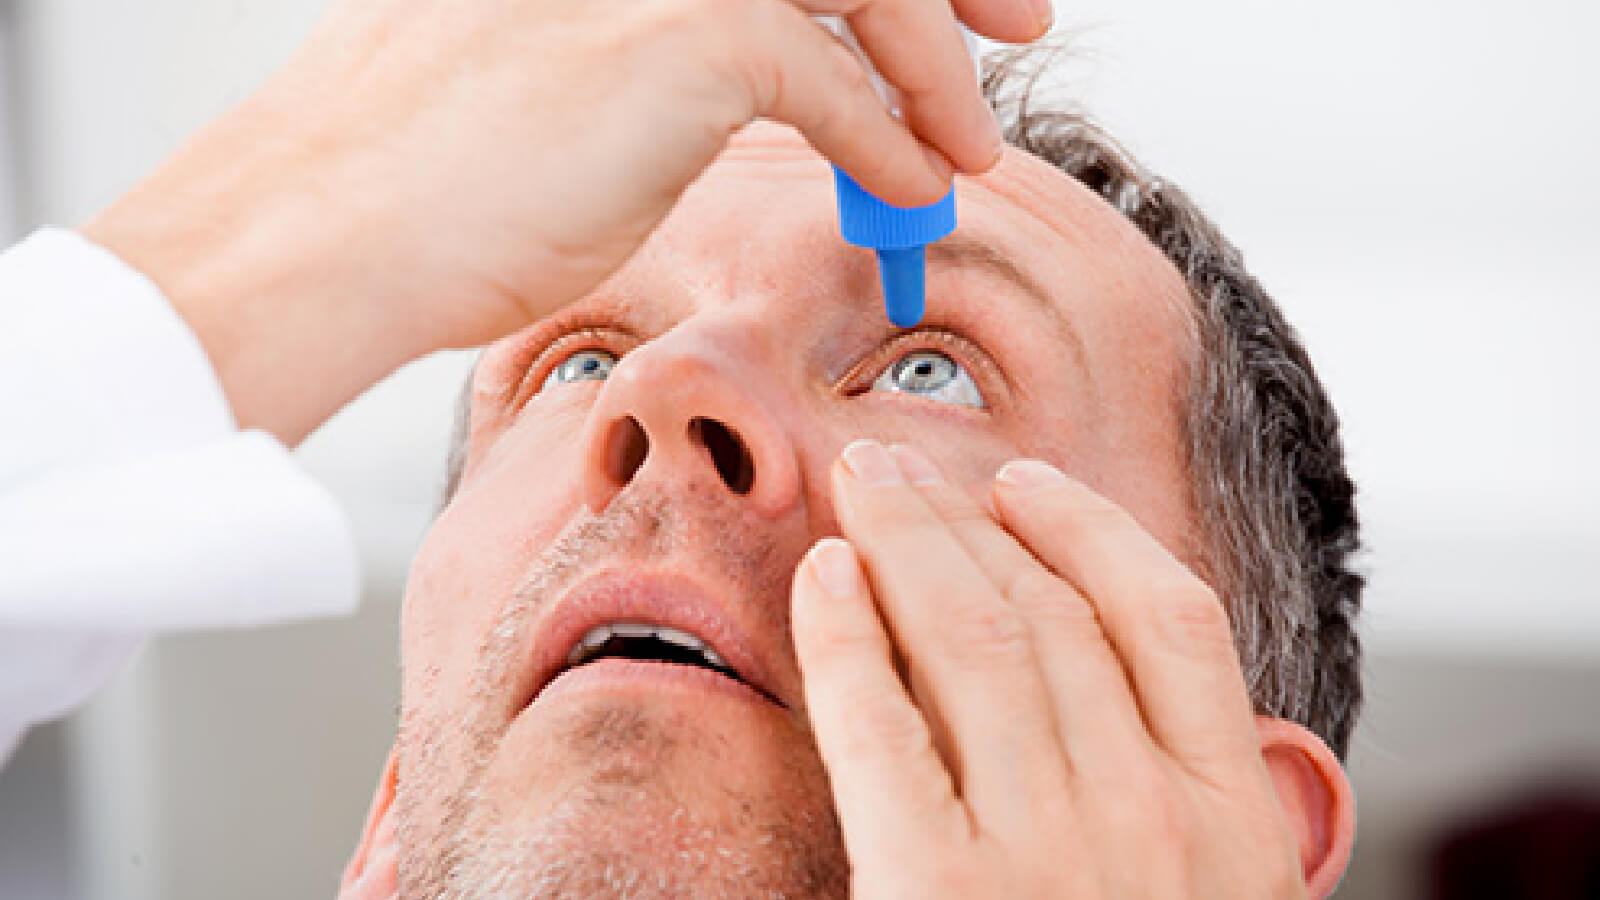 Eyedrop - Glaucoma Treatments- Medicine